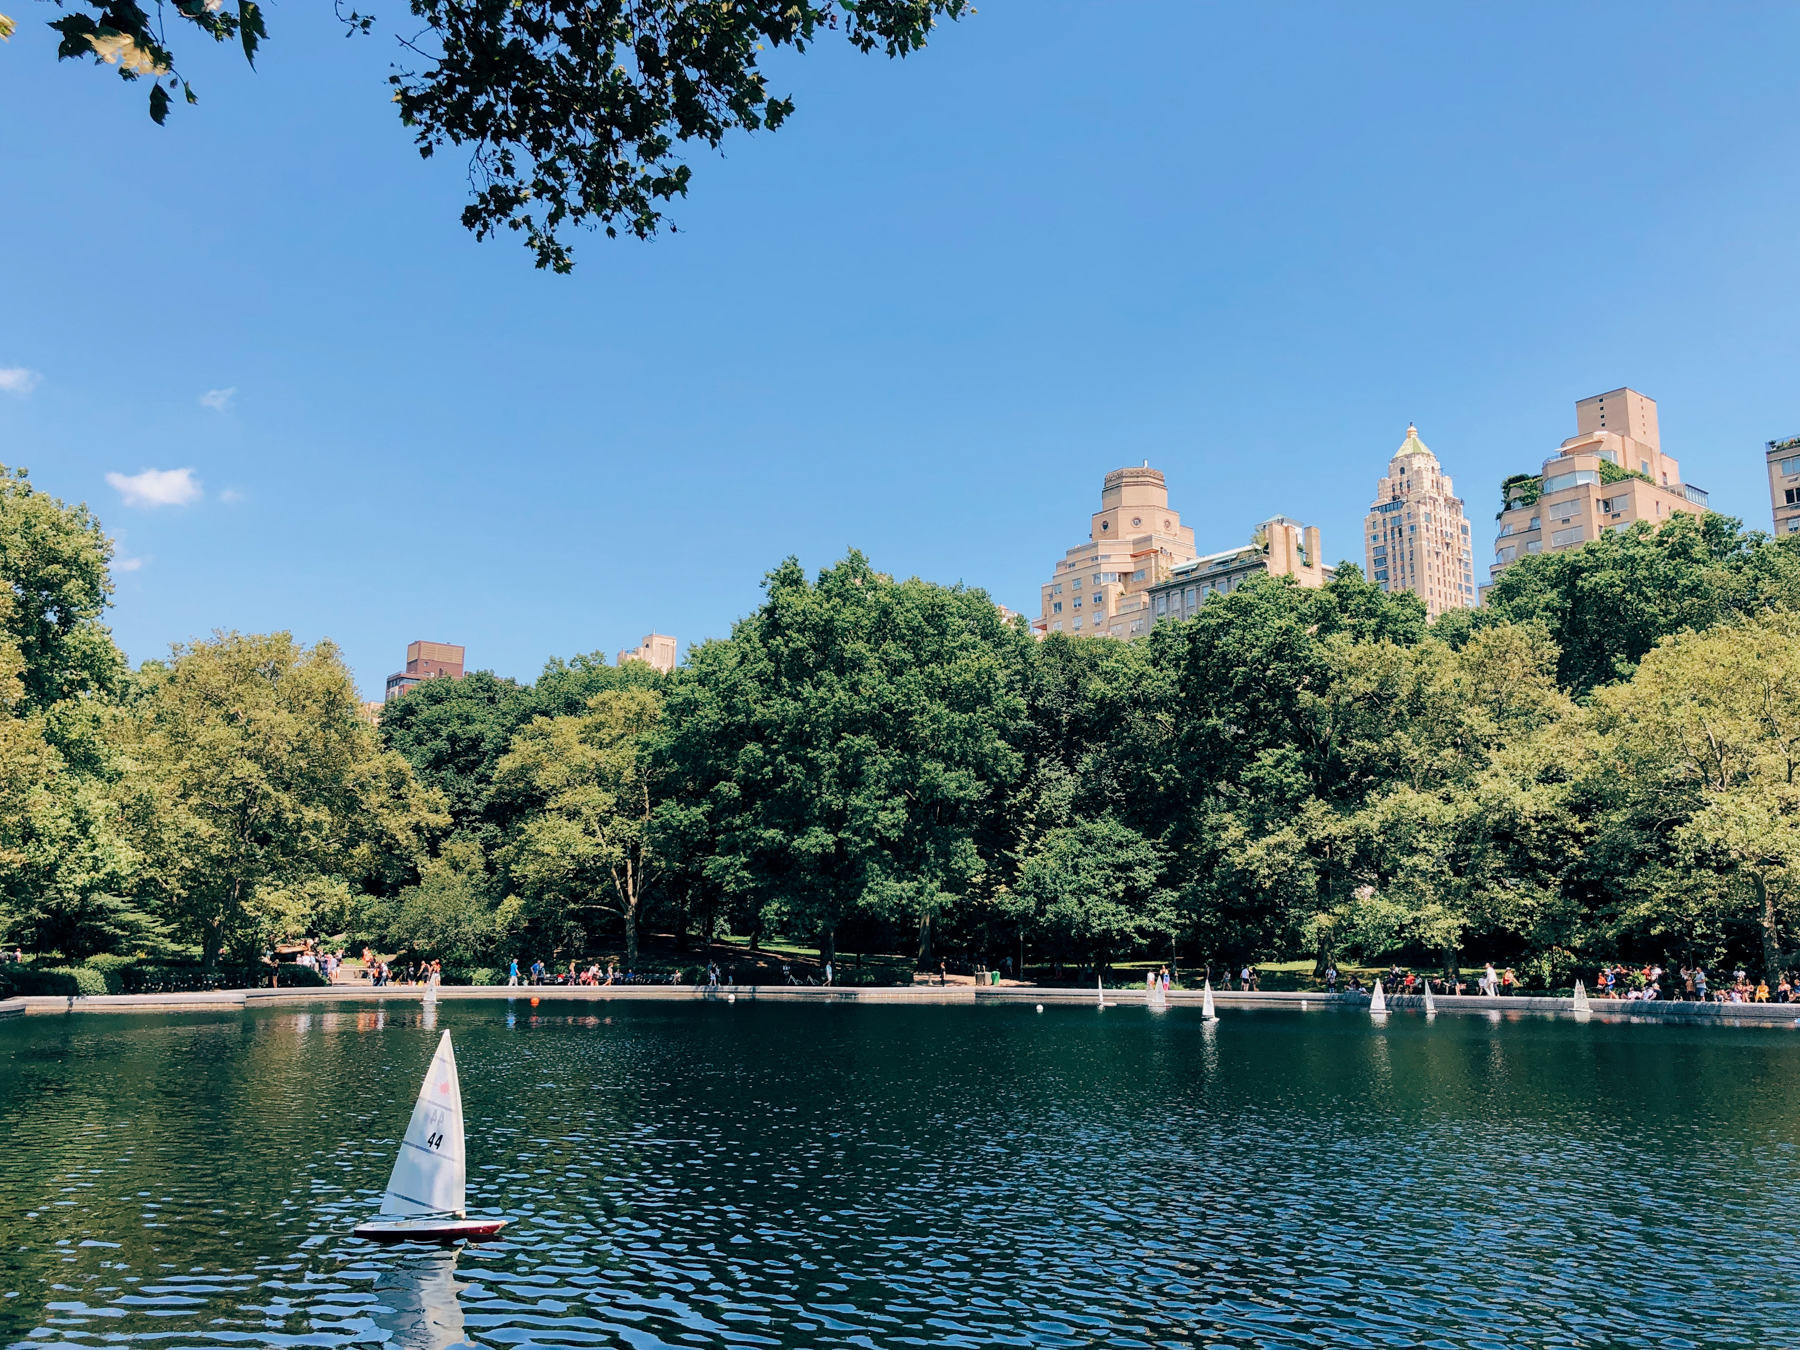 Mini sailboats at the Conservatory Water in Central Park